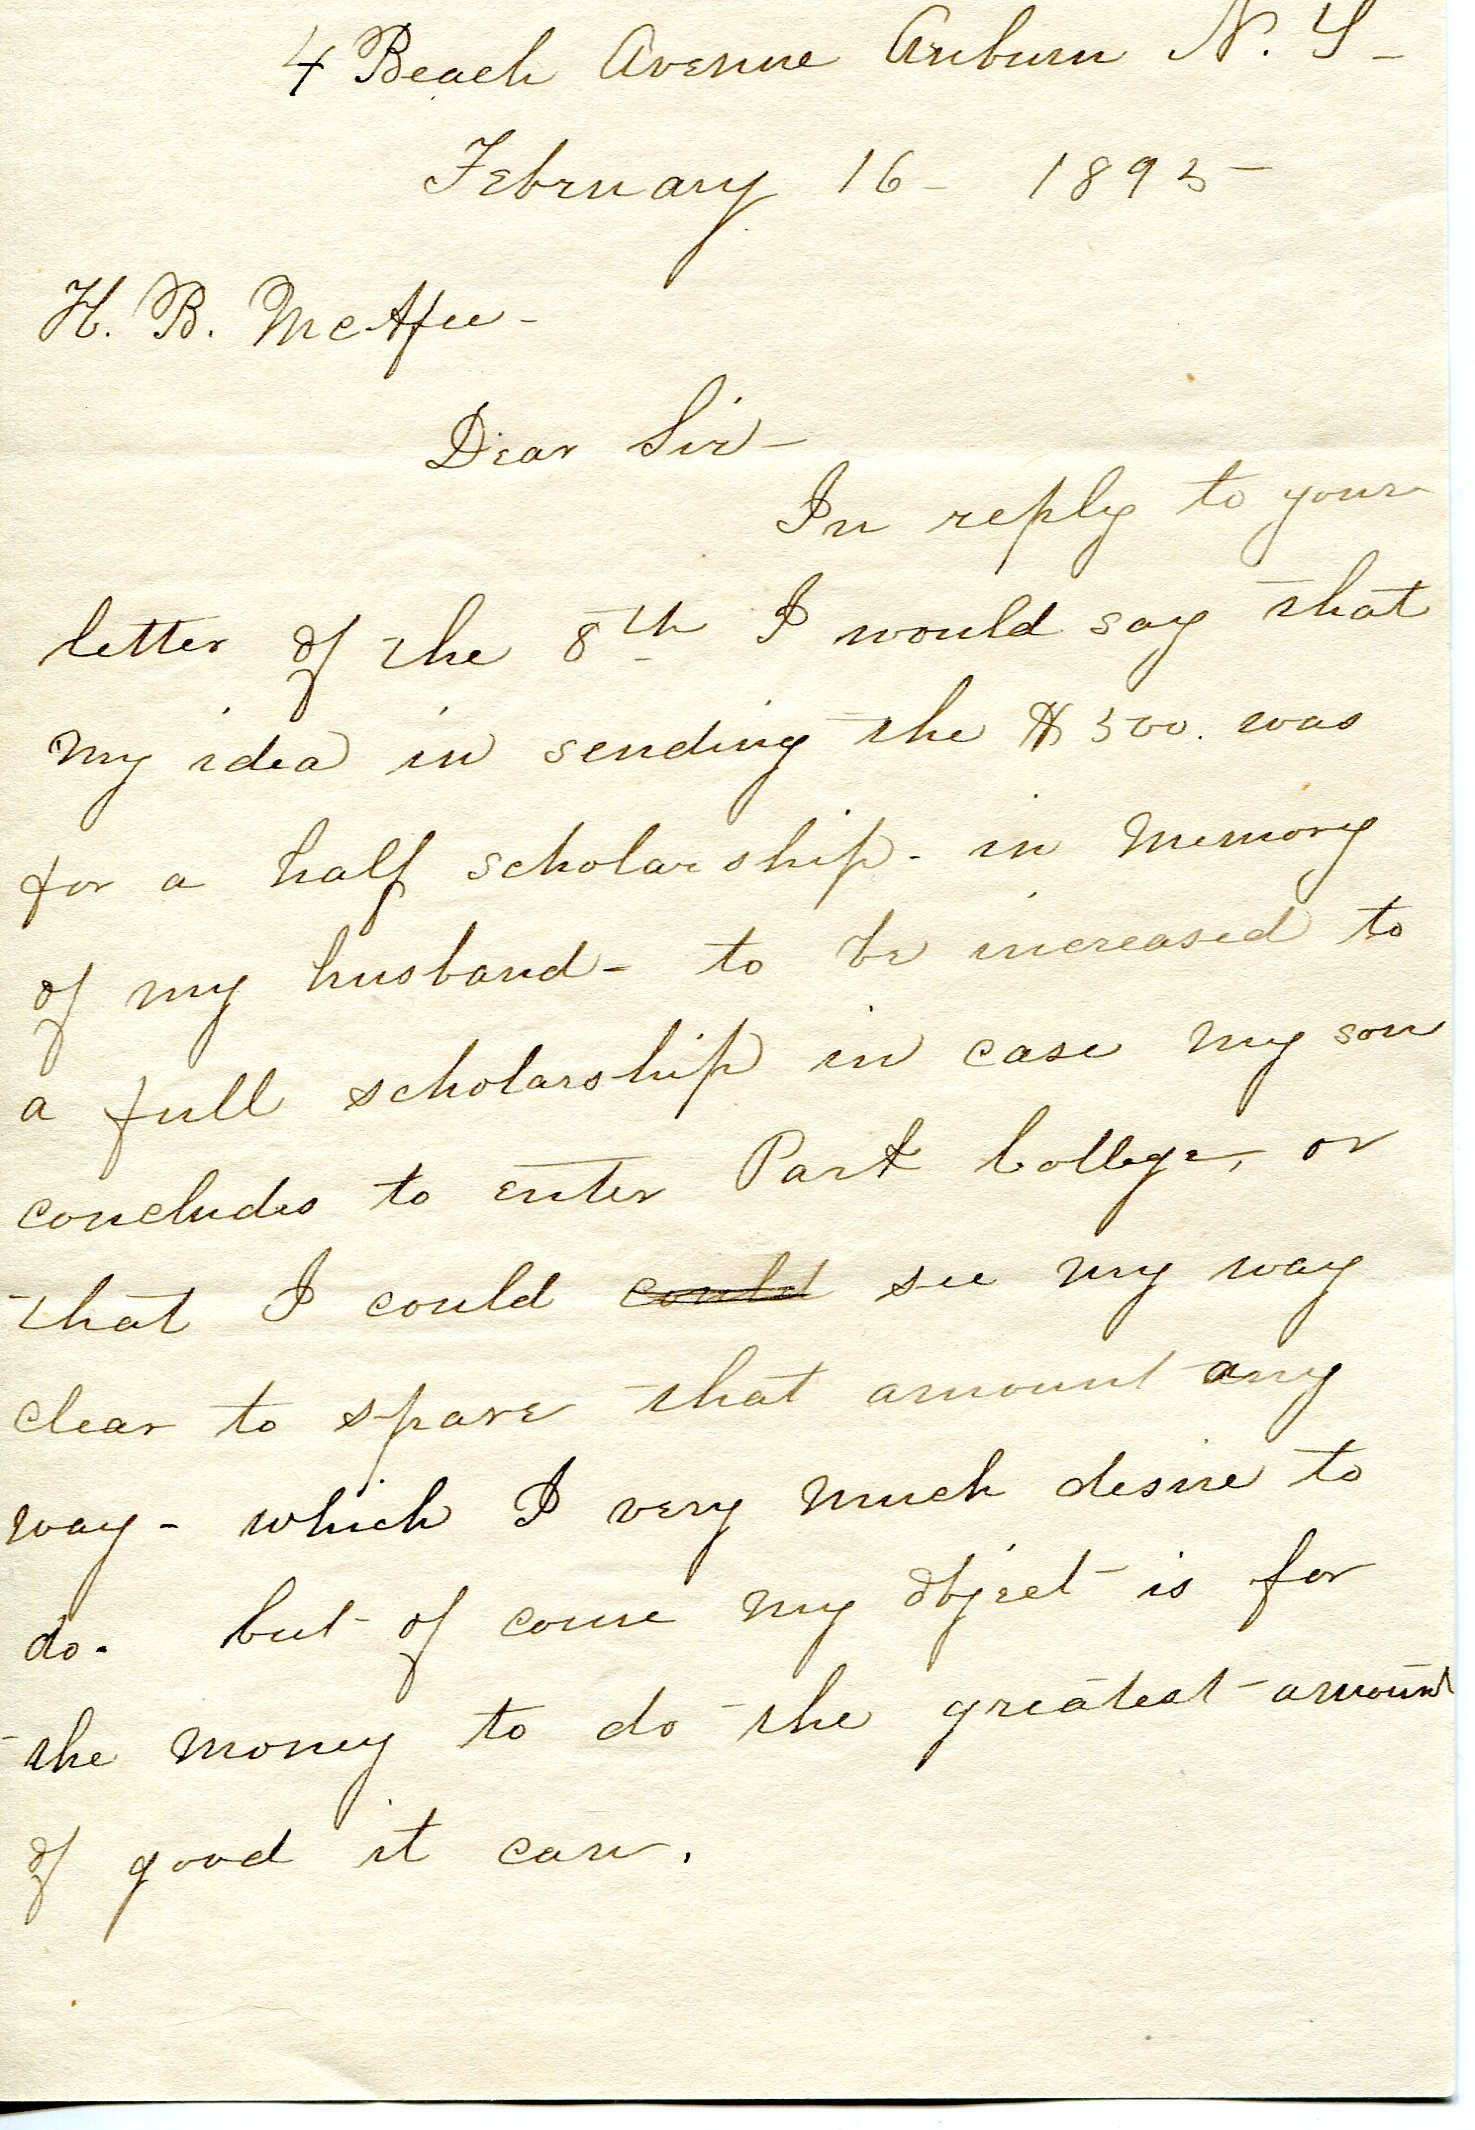 The first page of a letter sent from Helen Westcott to H. B. McAfee stating she will send the five-hundred dollar scholarship to Park and is willing to lift the amount if her son decides to attend the college. February 16, 1895